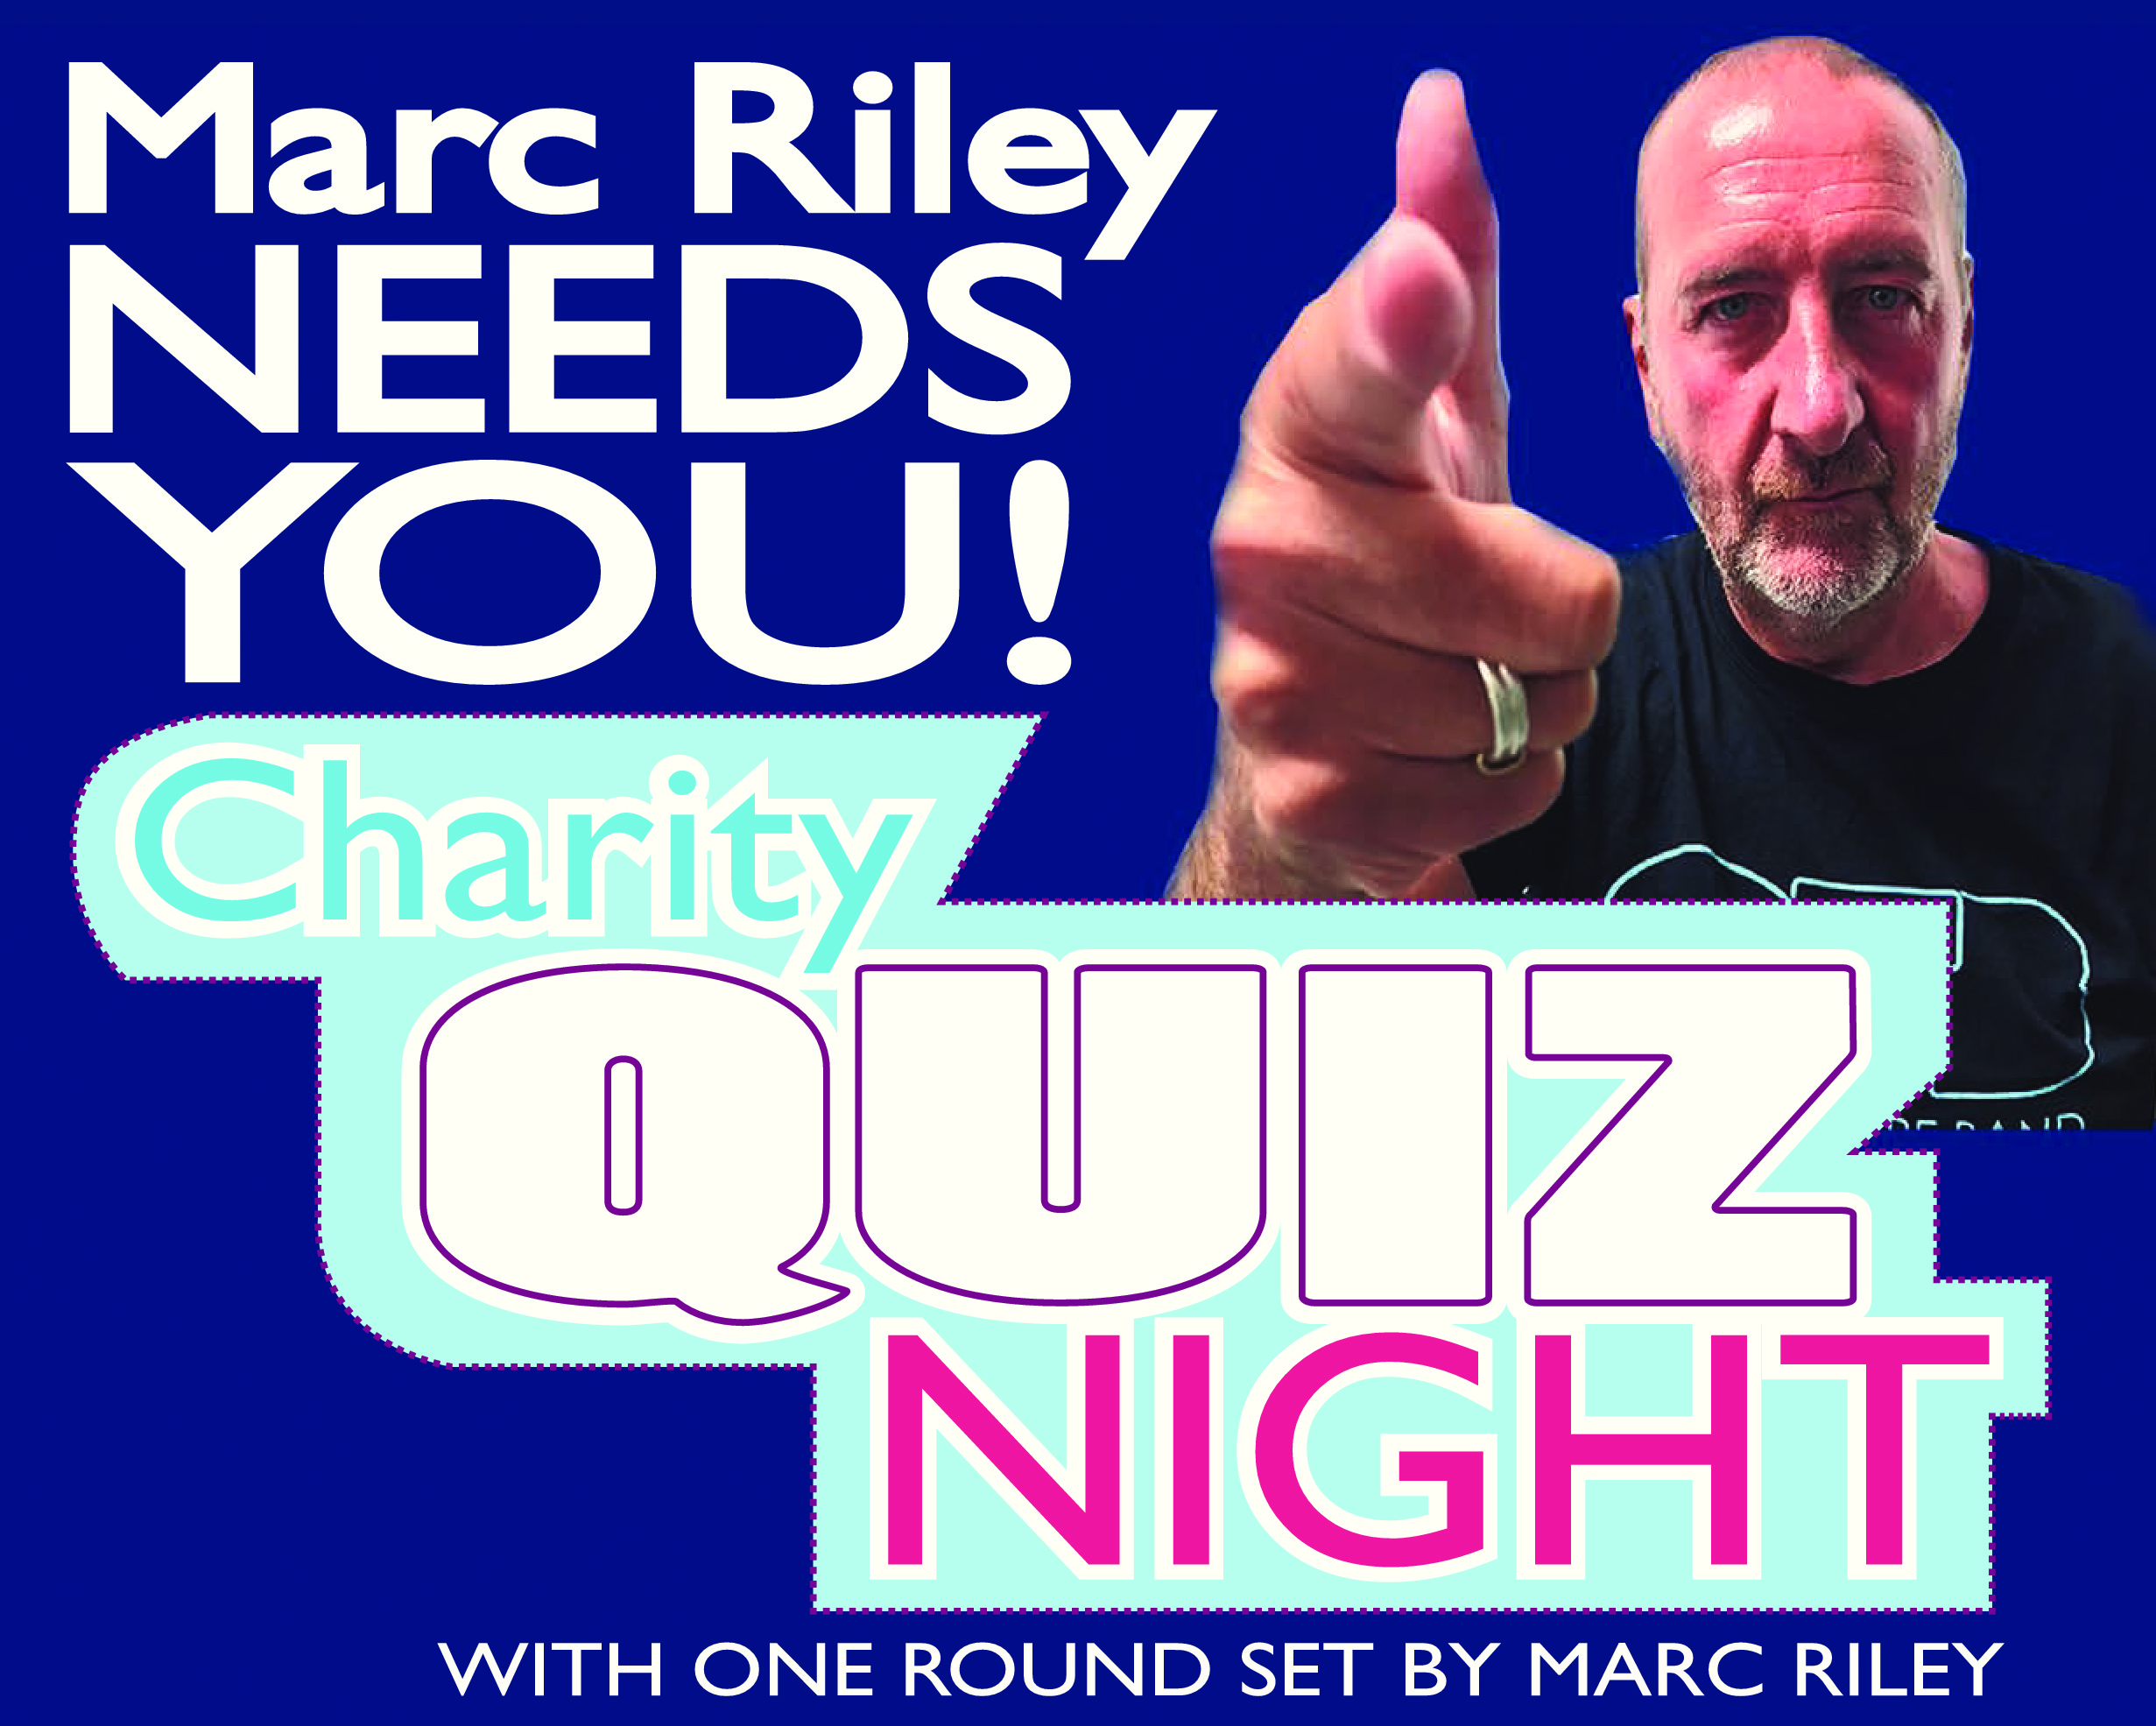 Marc Riley Needs You